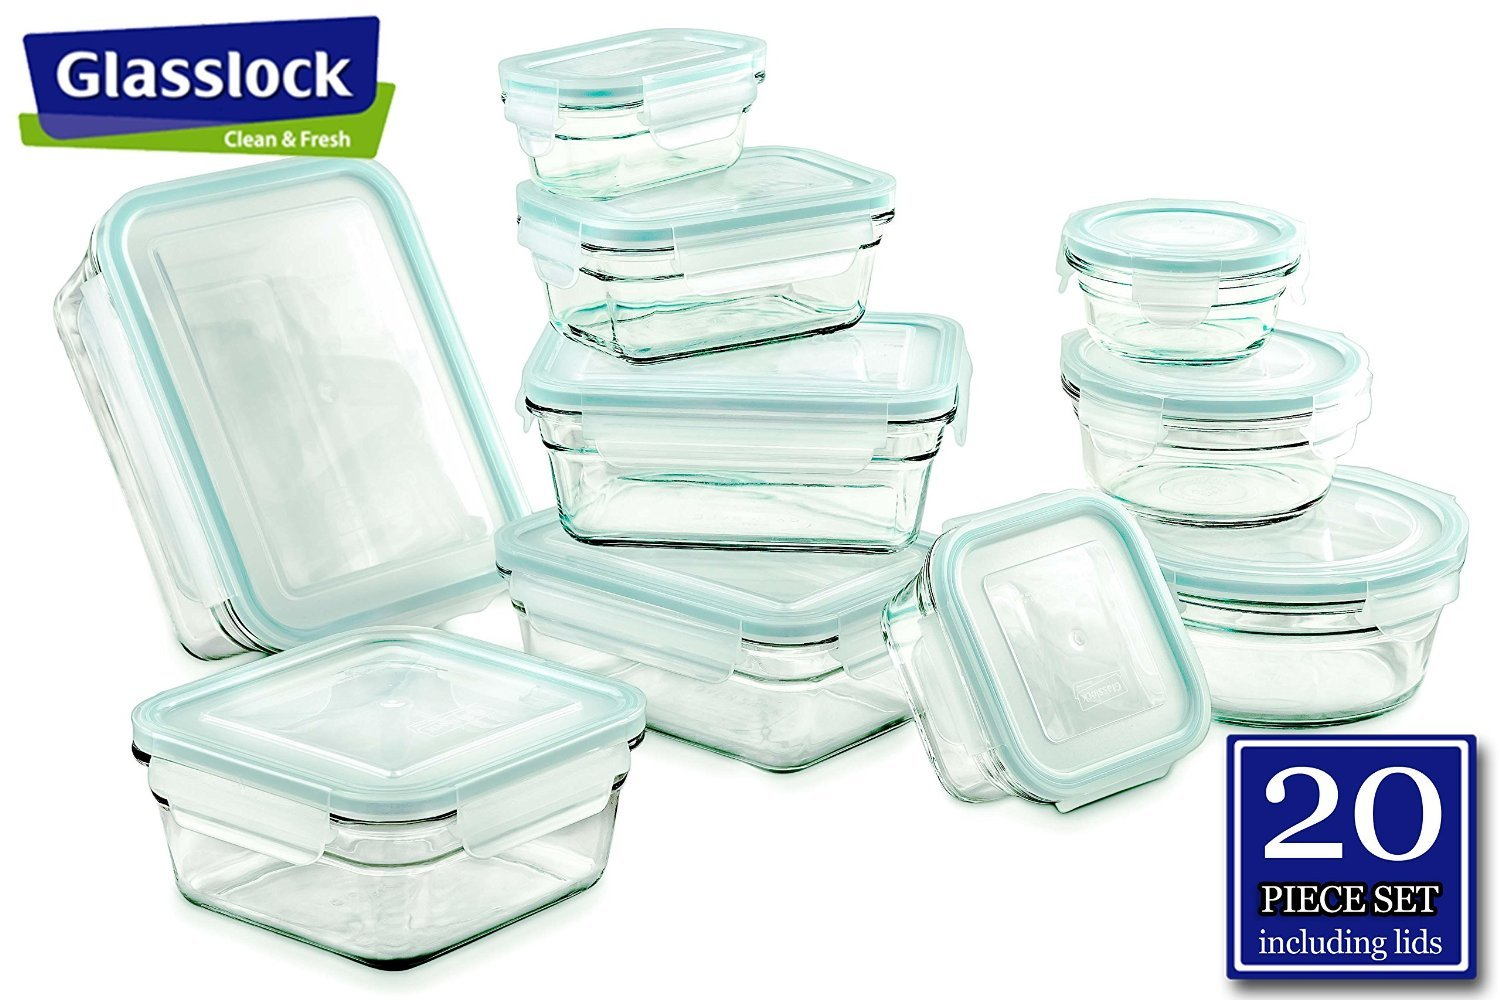 Amazoncom Glasslock Food Storage Glass Containers 20pc set R Anti